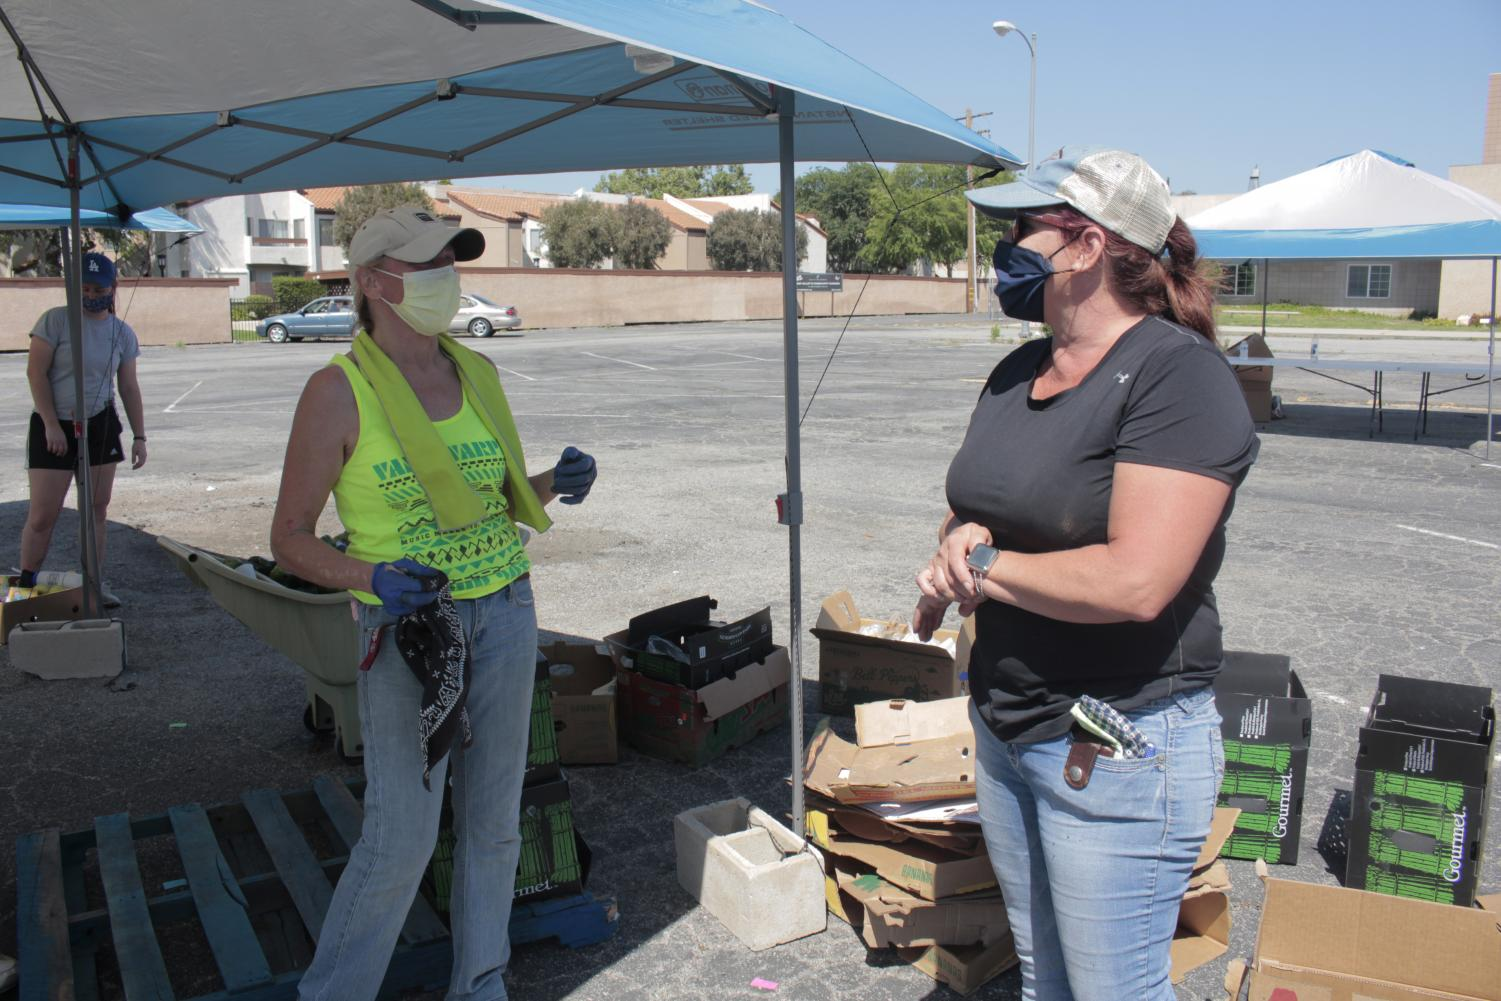 Volunteer Suzanne Morrow and Simi at the Garden president Jodie Francouer help pass out free produce to the community on May 5, 2020 in Simi Valley.